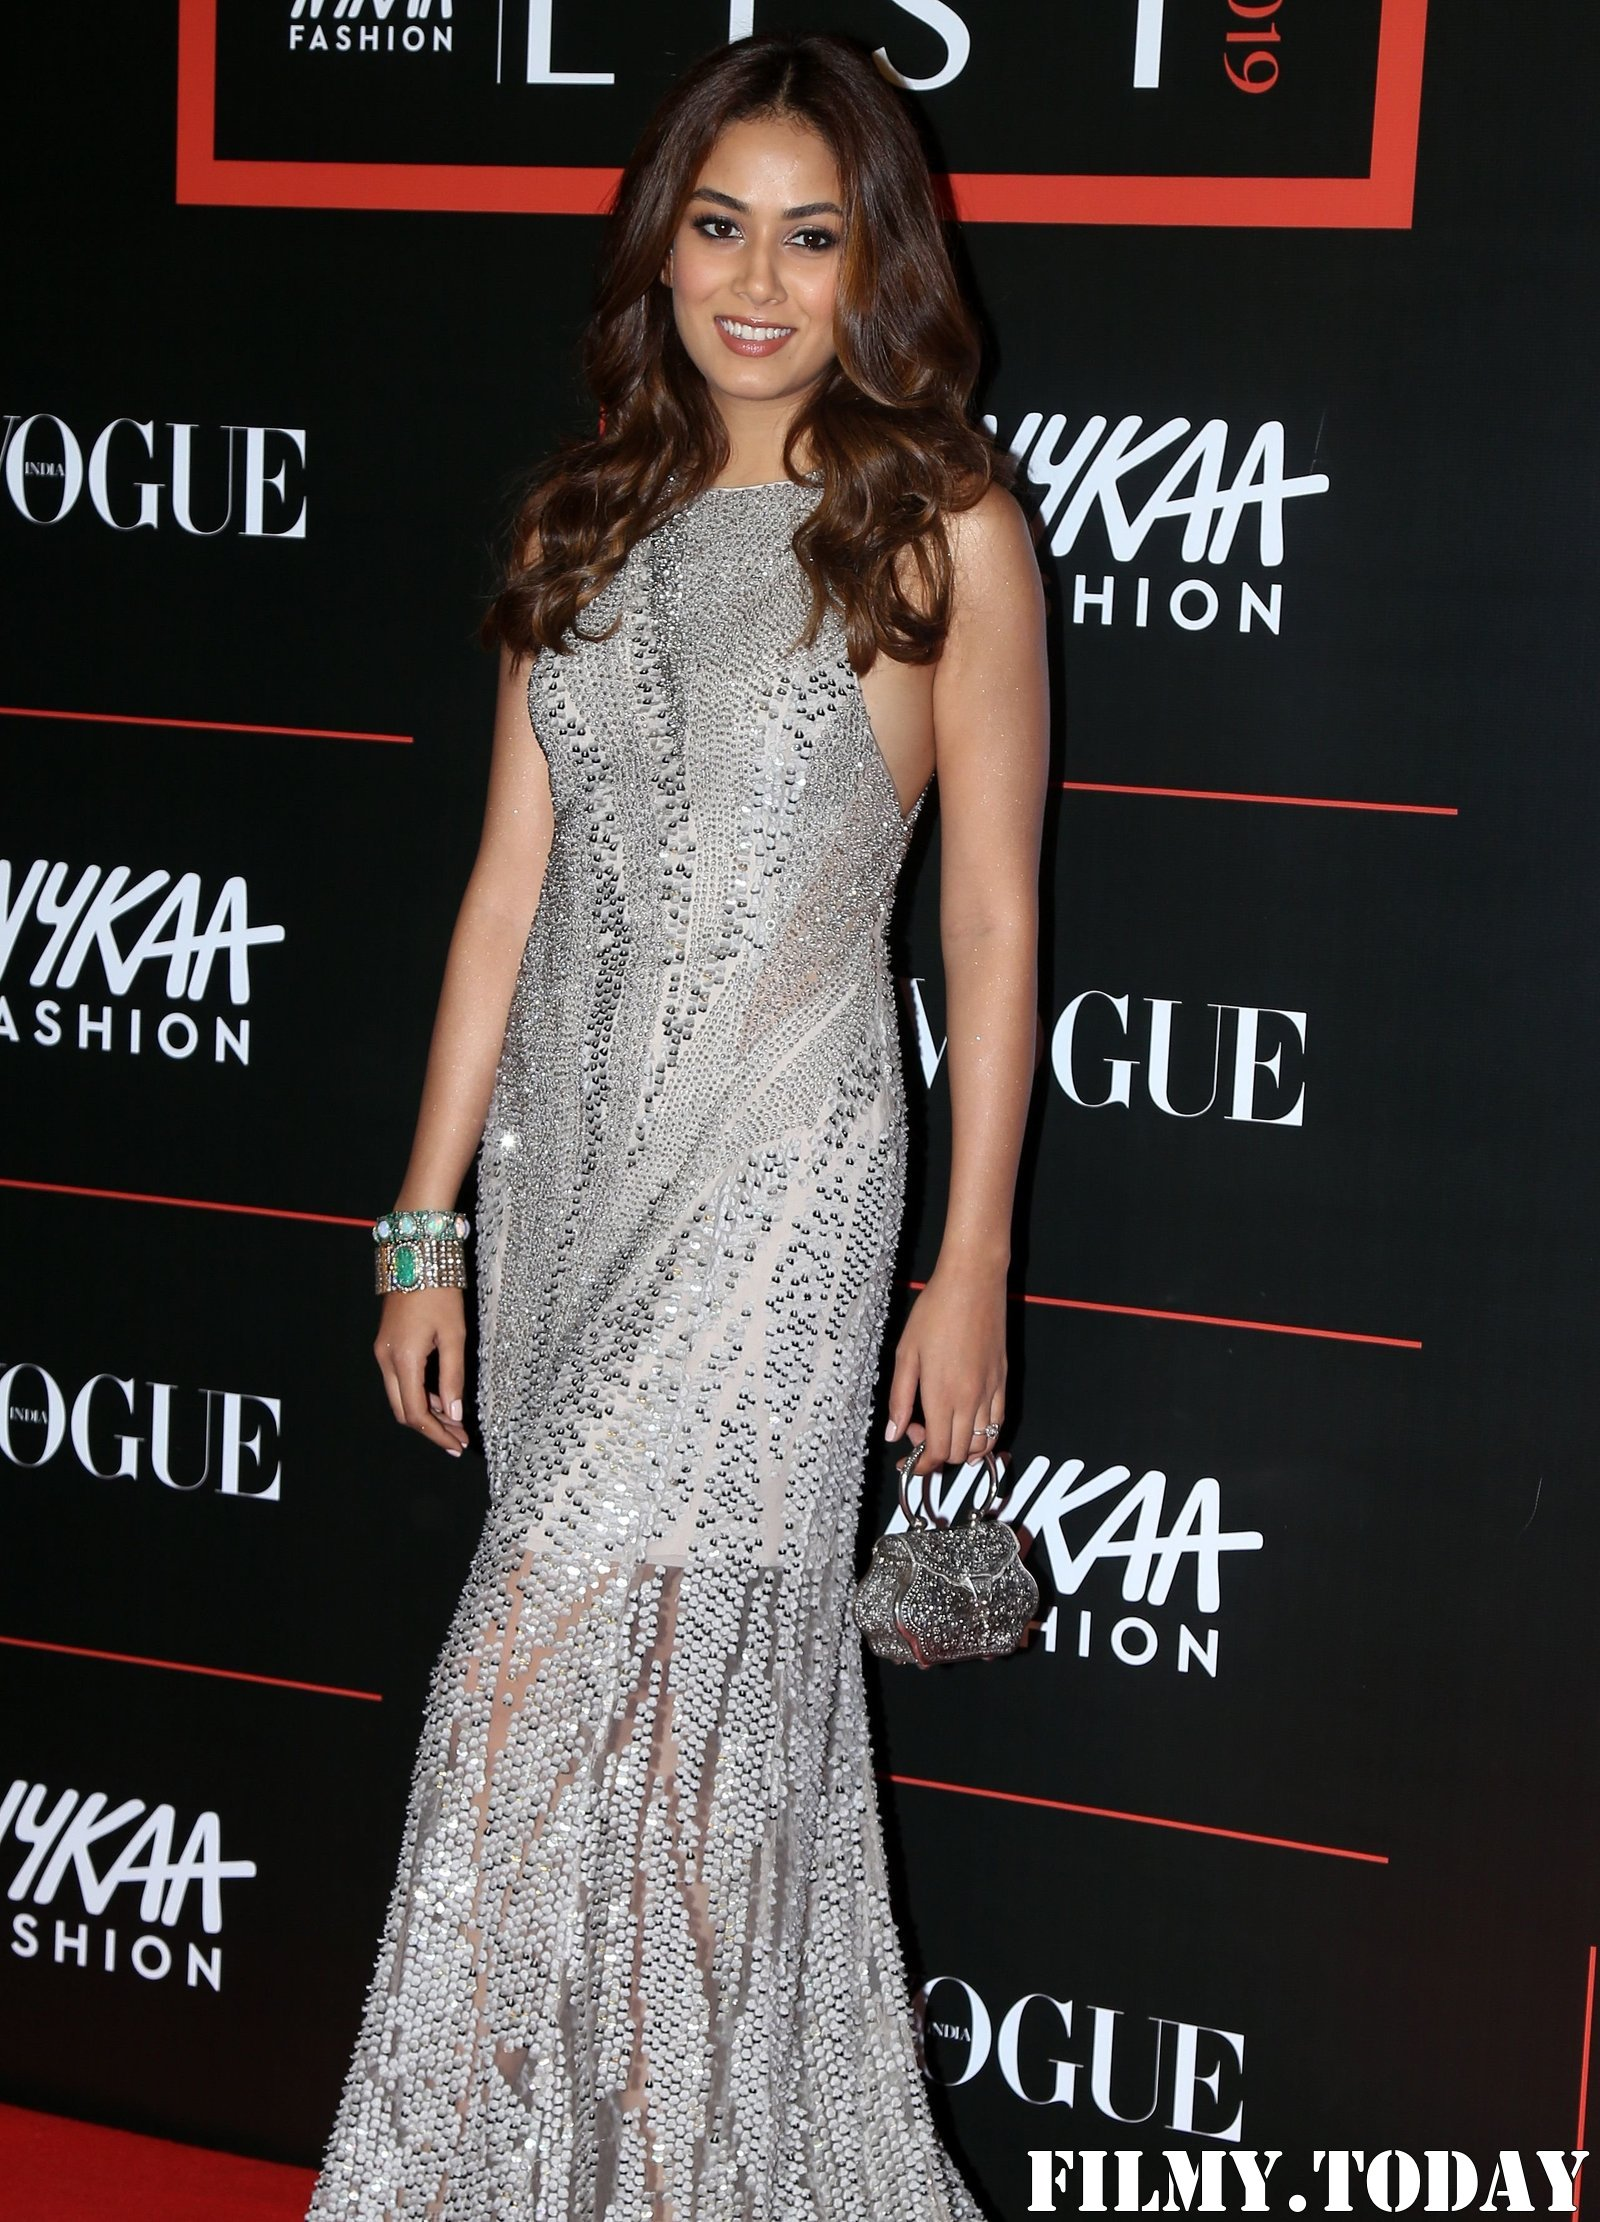 Mira Rajput - Photos: Celebs At Vogue The Power List 2019 At St Regis Hotel   Picture 1706339